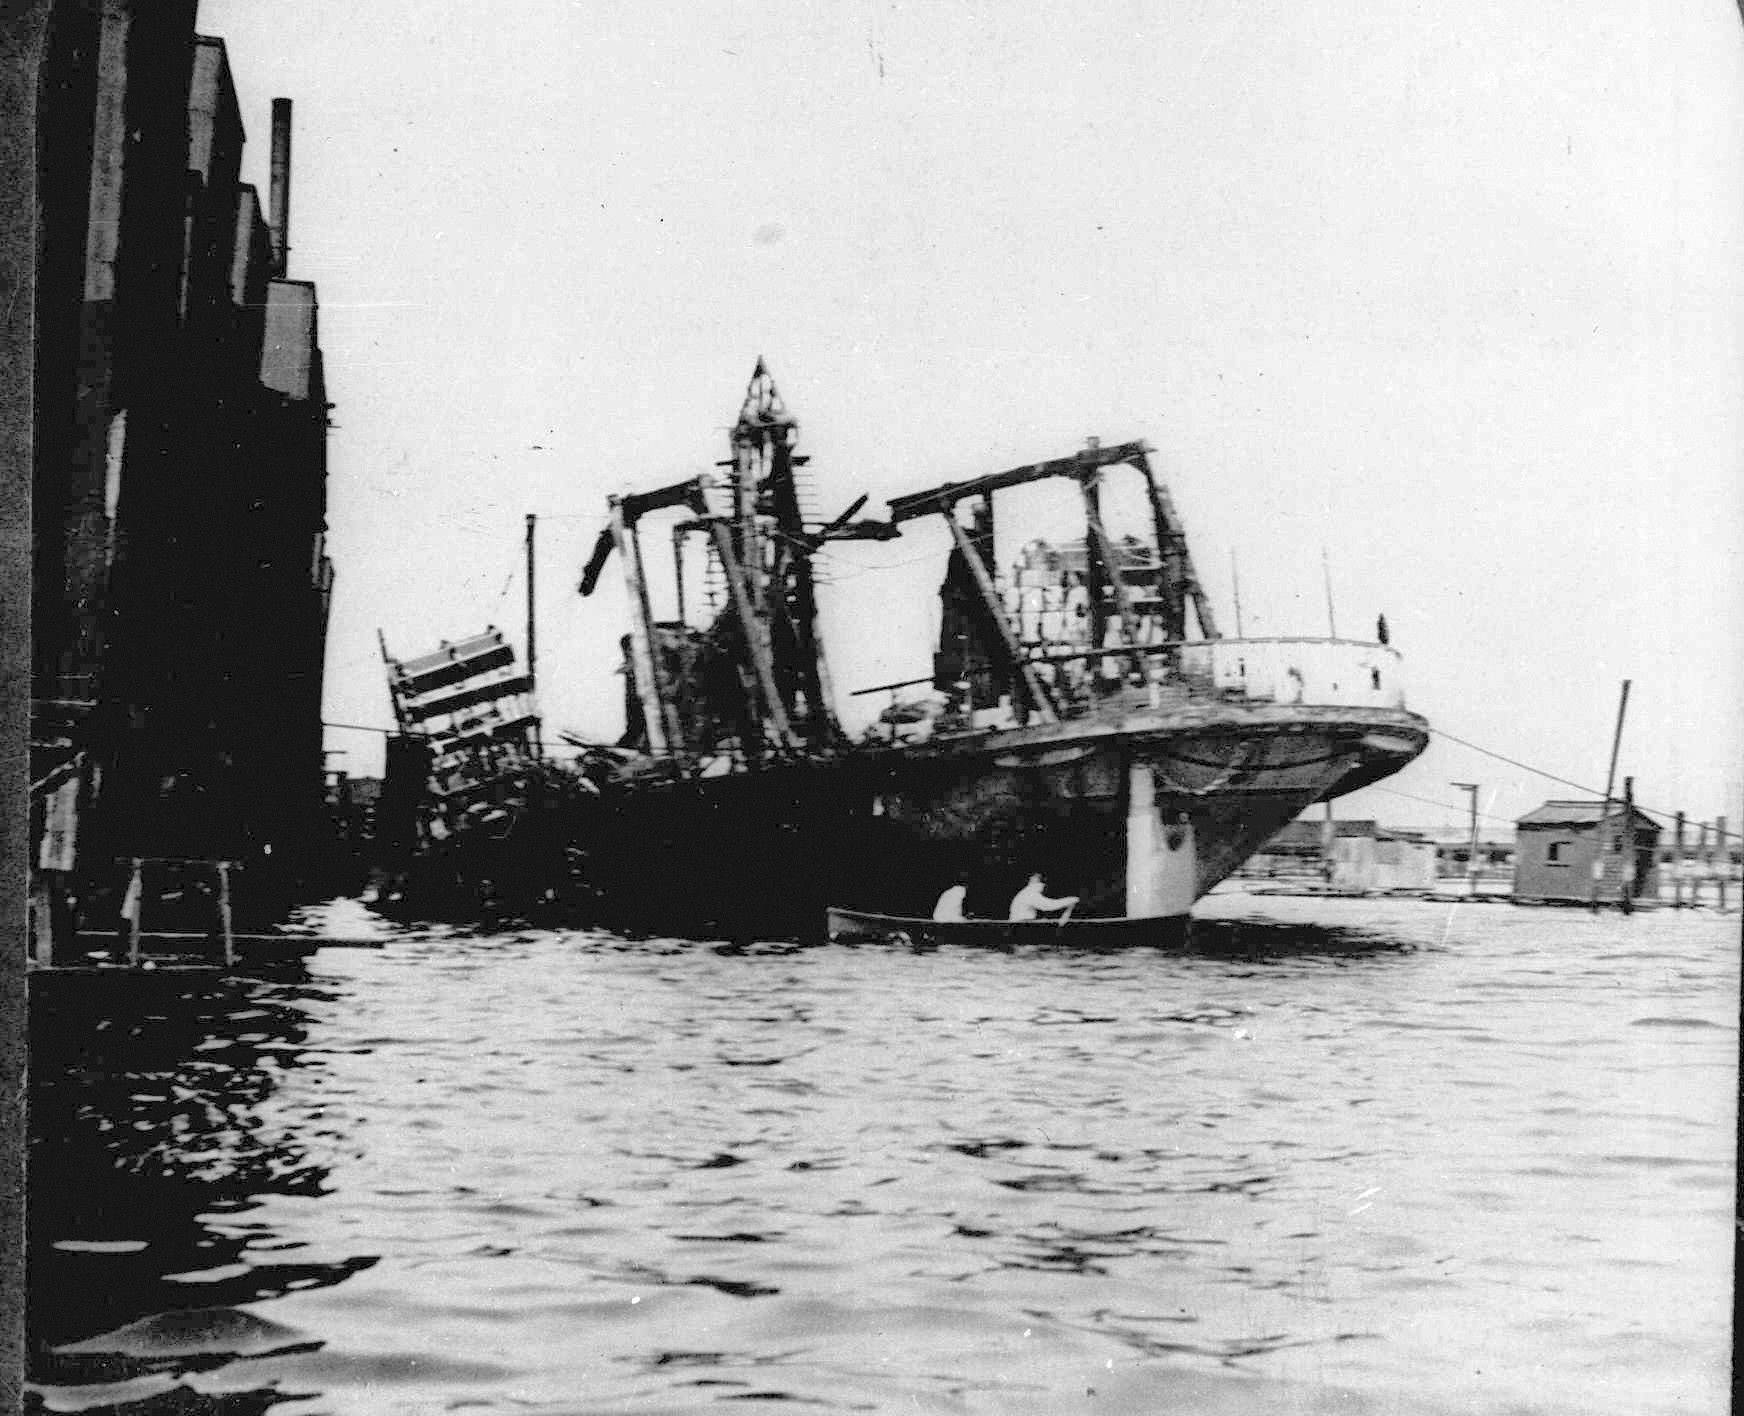 The excursion boat General Slocum lies beached off Hell Gate in New York City's East River, following a fire and resulting panic. The disaster cost the lives of 1,030 mostly German immigrants on June 15, 1904.